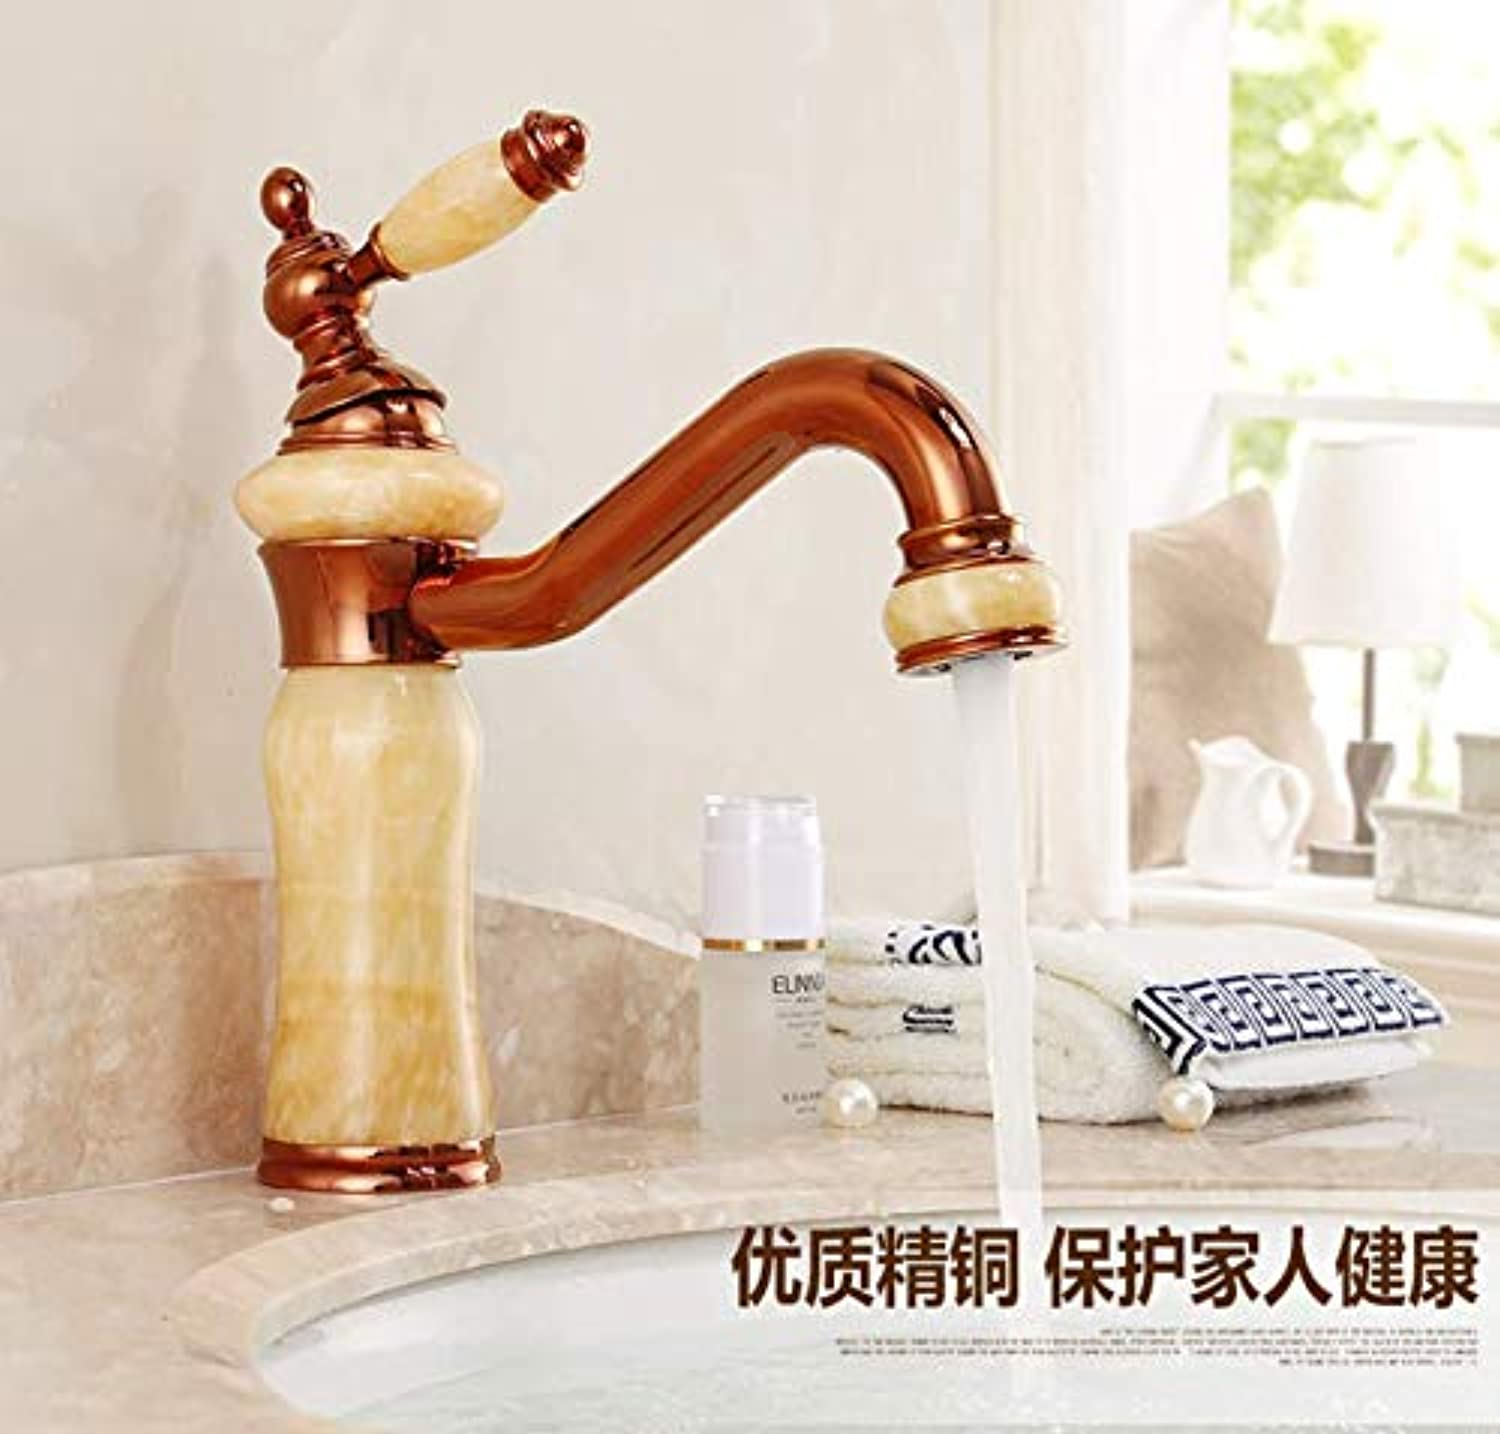 Tub Taps Faucet Copper gold Jade Faucet Hot and Cold Wash Basin Single Hole redating Antique Marble Basin Faucet